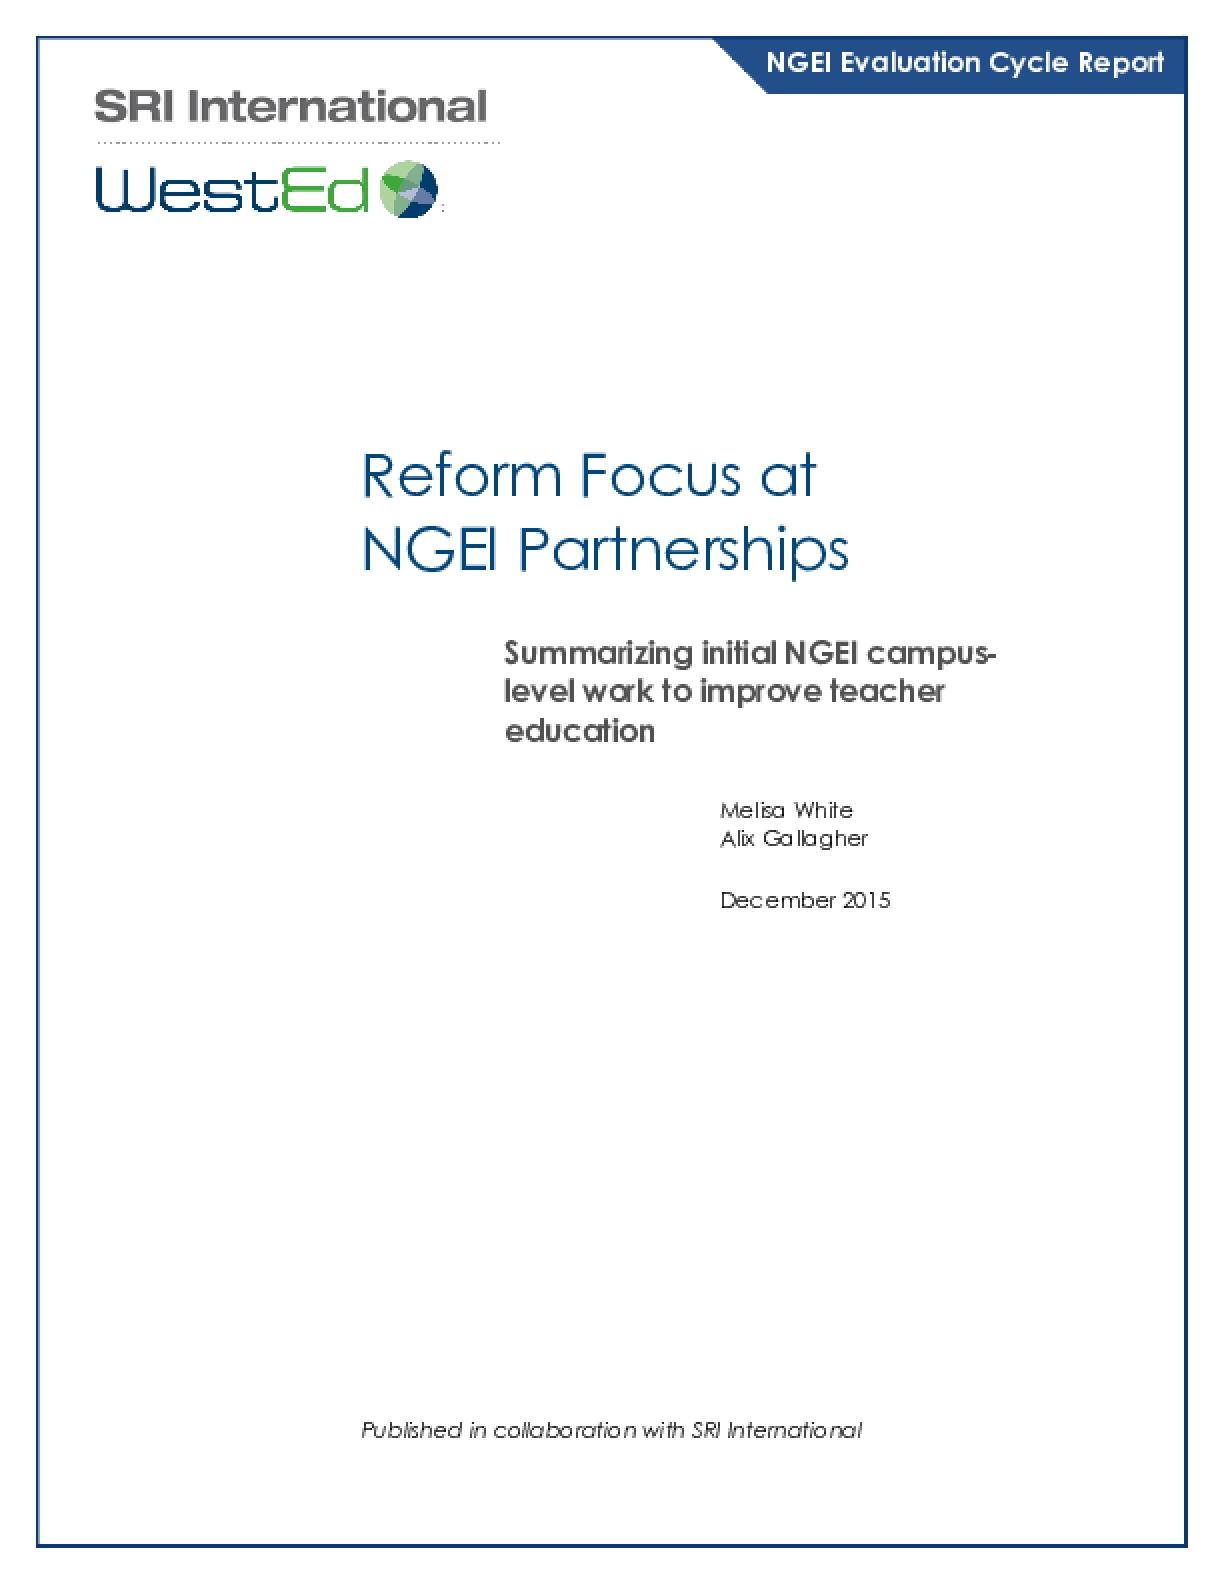 Reform Focus at NGEI Partnerships: Summarizing initial NGEI campus-level work to improve teacher education